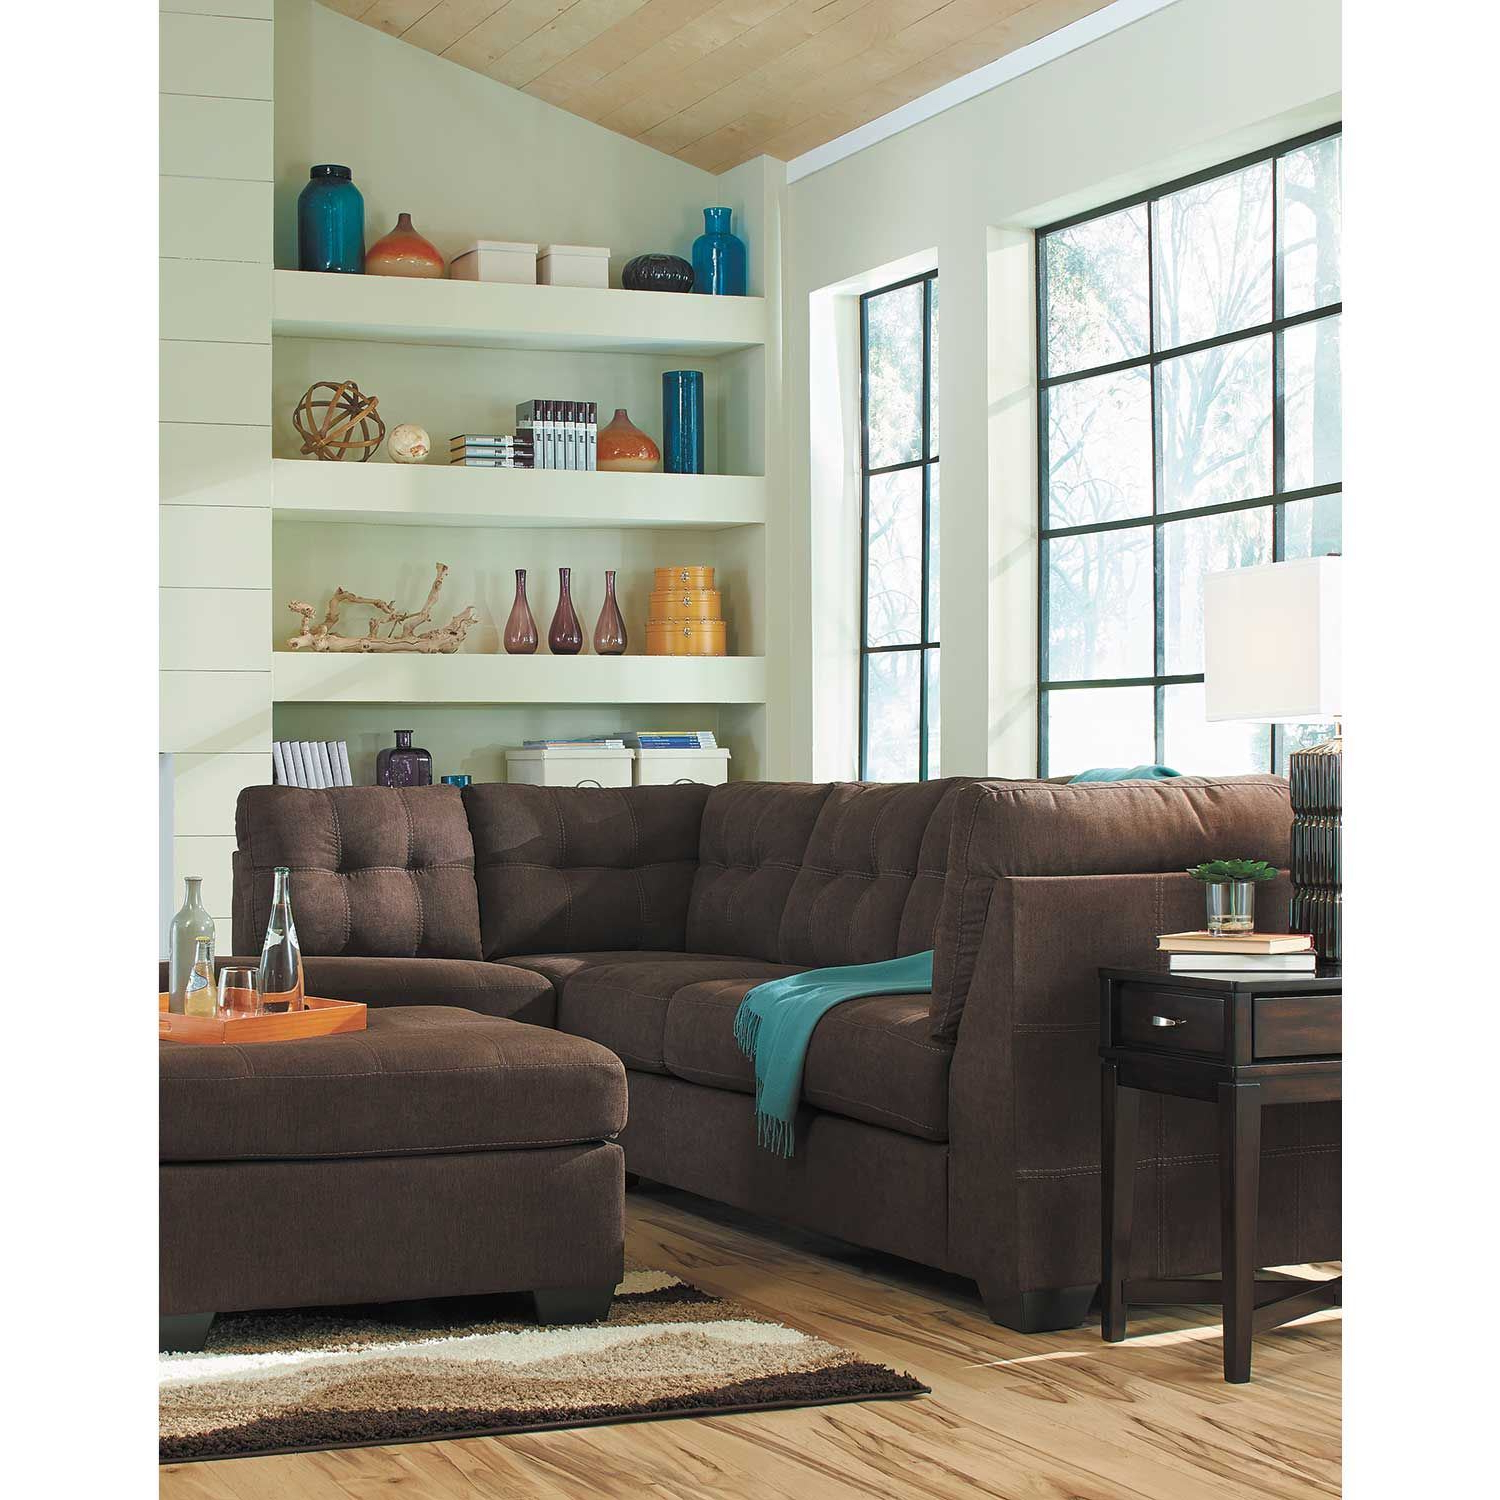 Fashionable Maier Walnut 2 Piece Sectional With Laf Chaise (View 7 of 20)